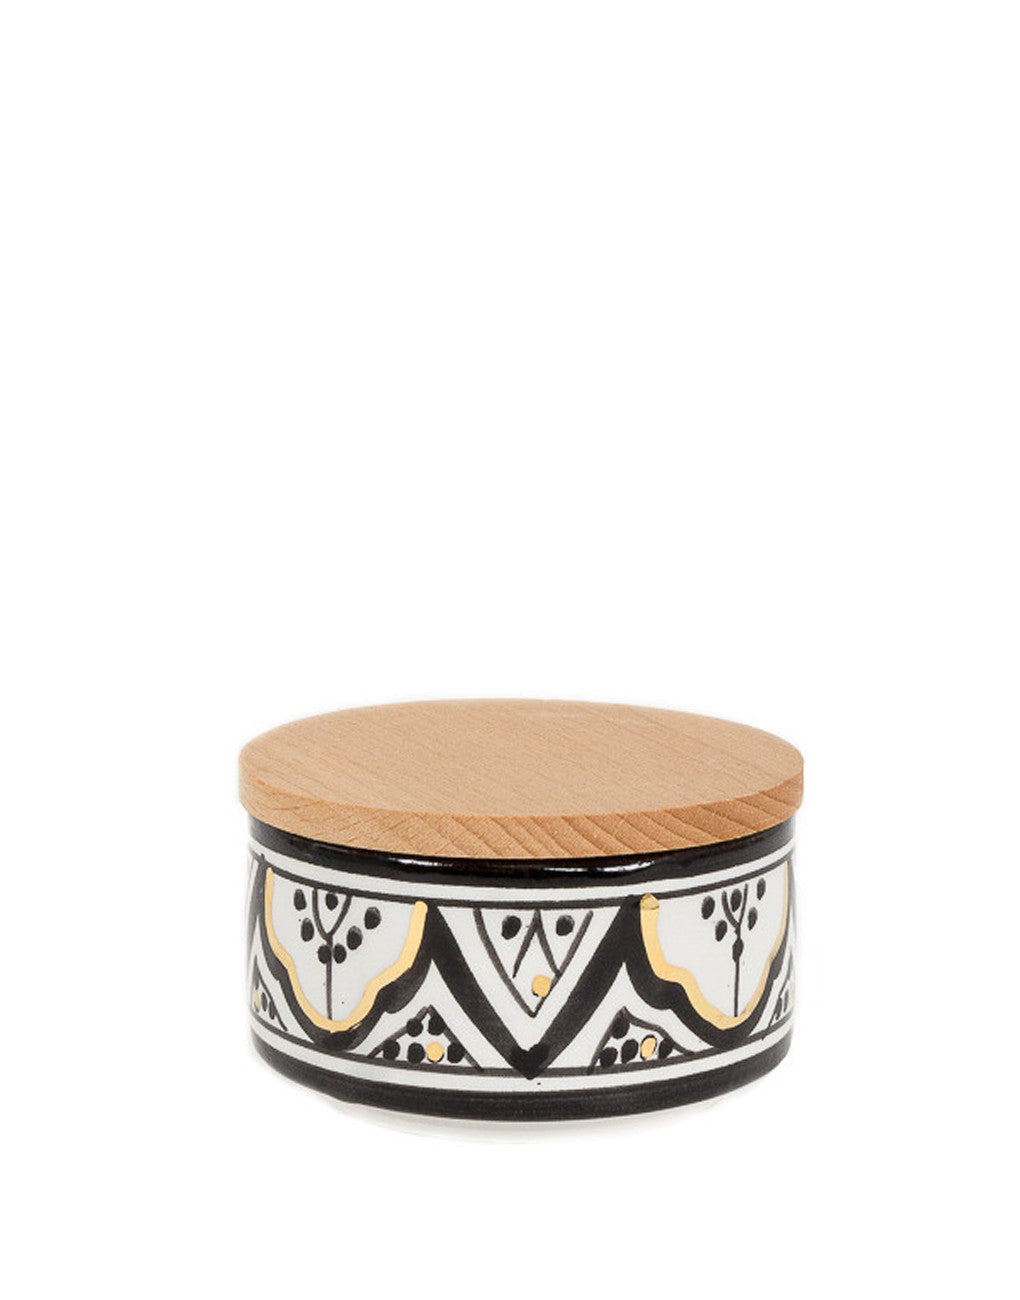 Fair Trade, Handmade Moroccan Ceramic Box, Black